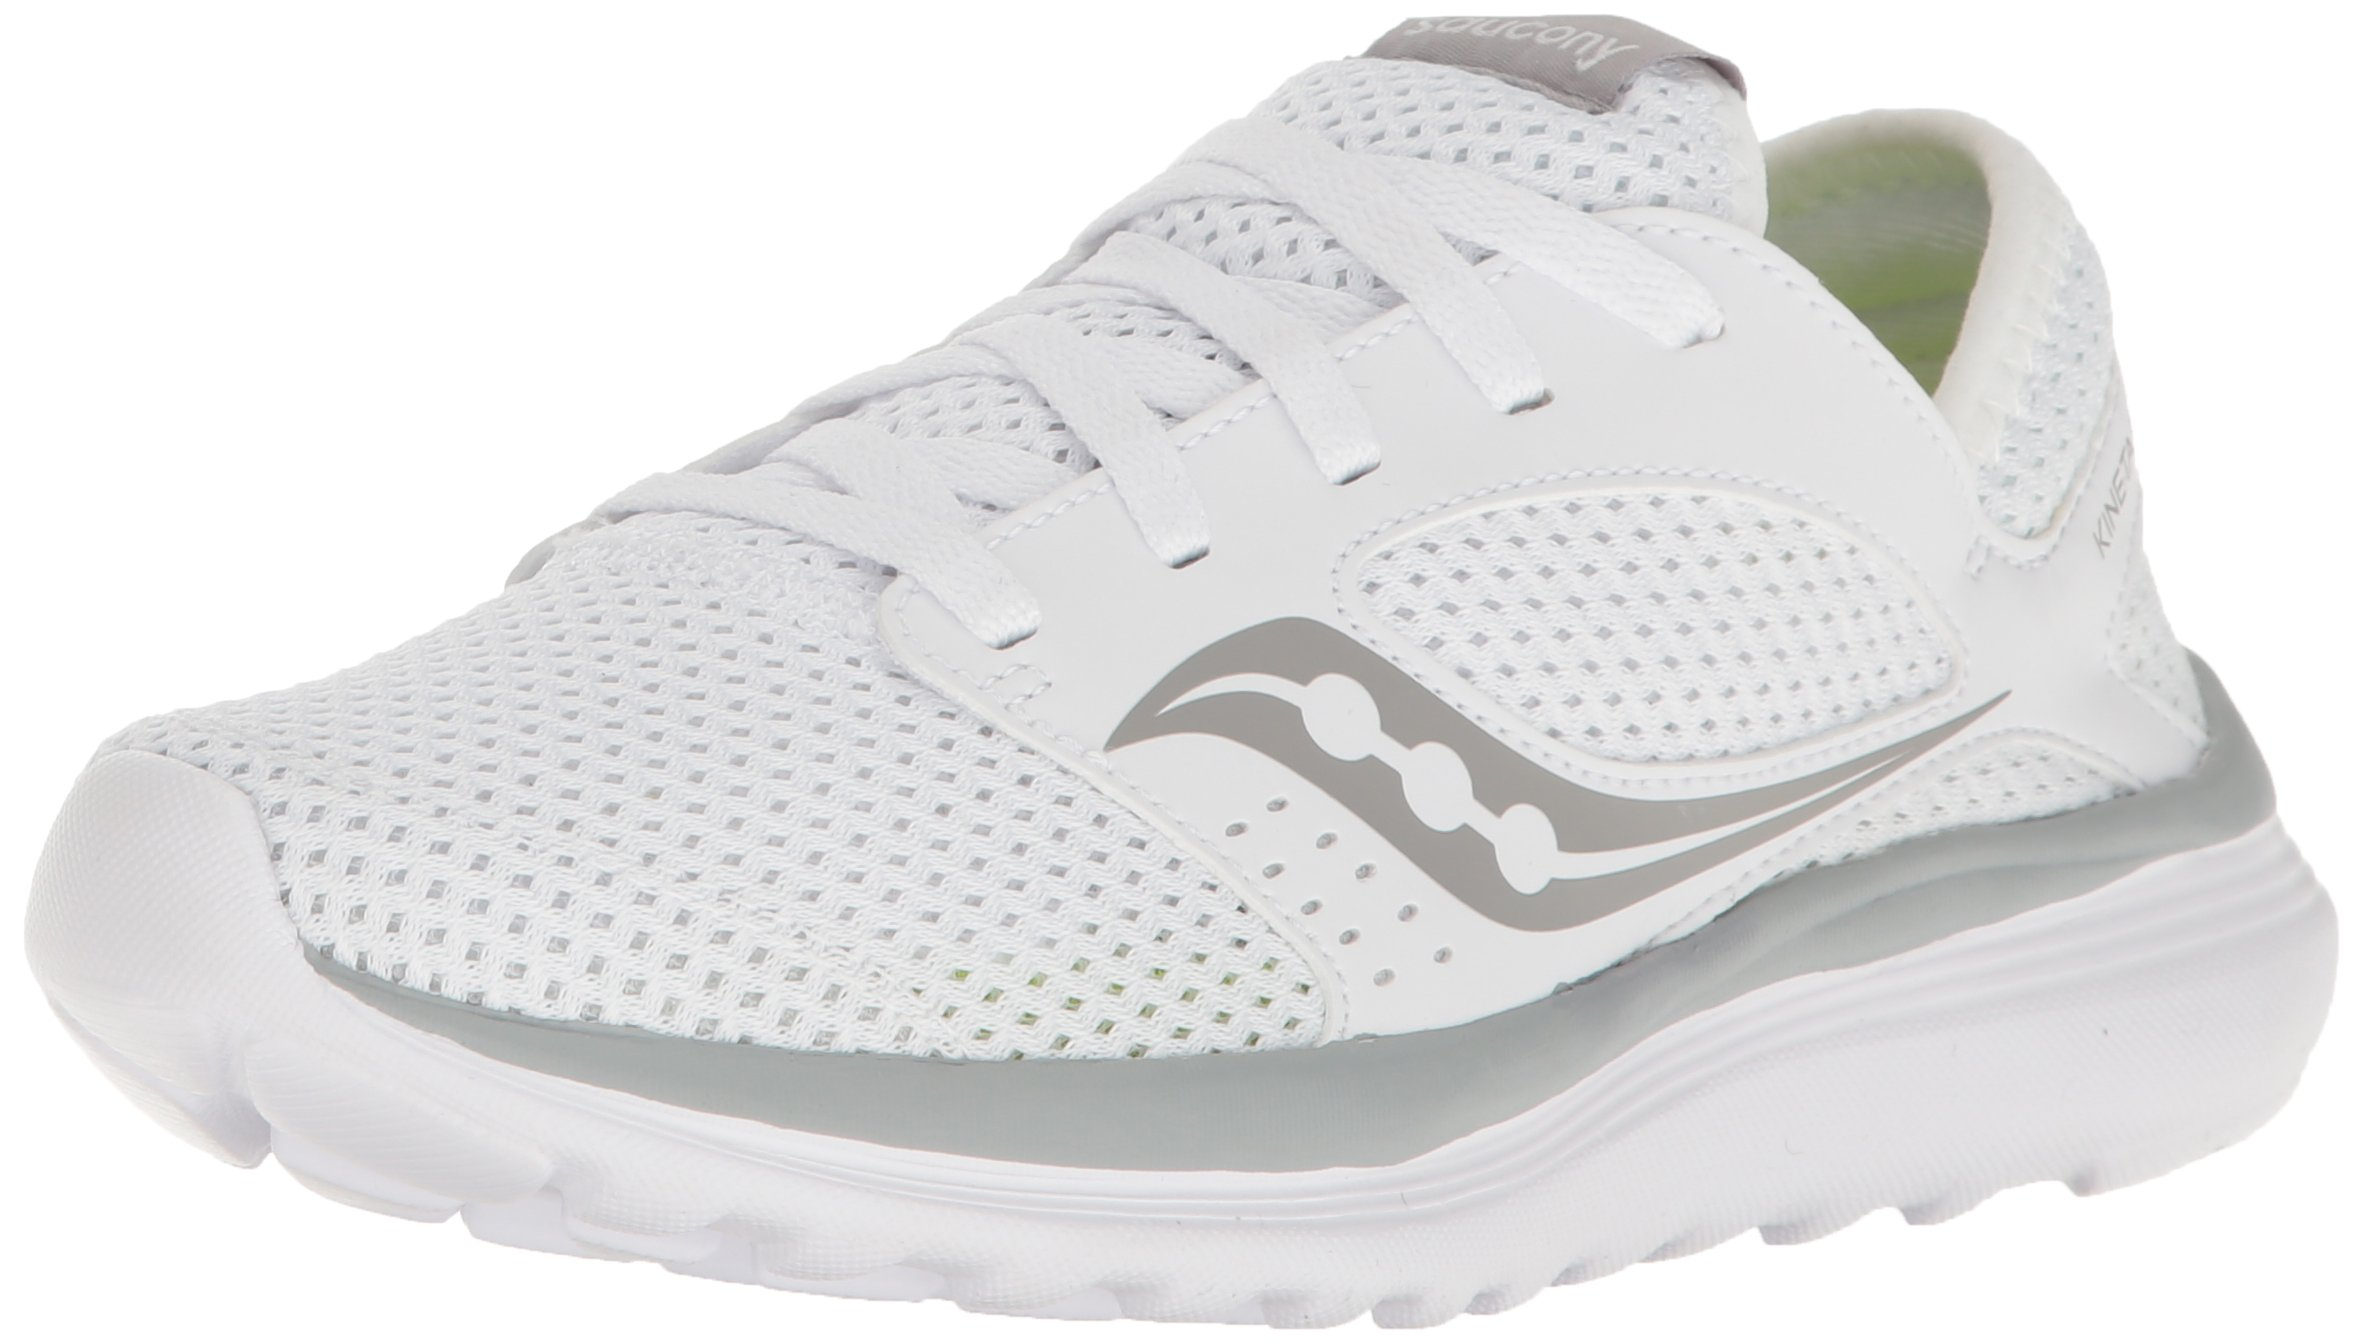 Women's Wide Tennis Shoes: Amazon.com